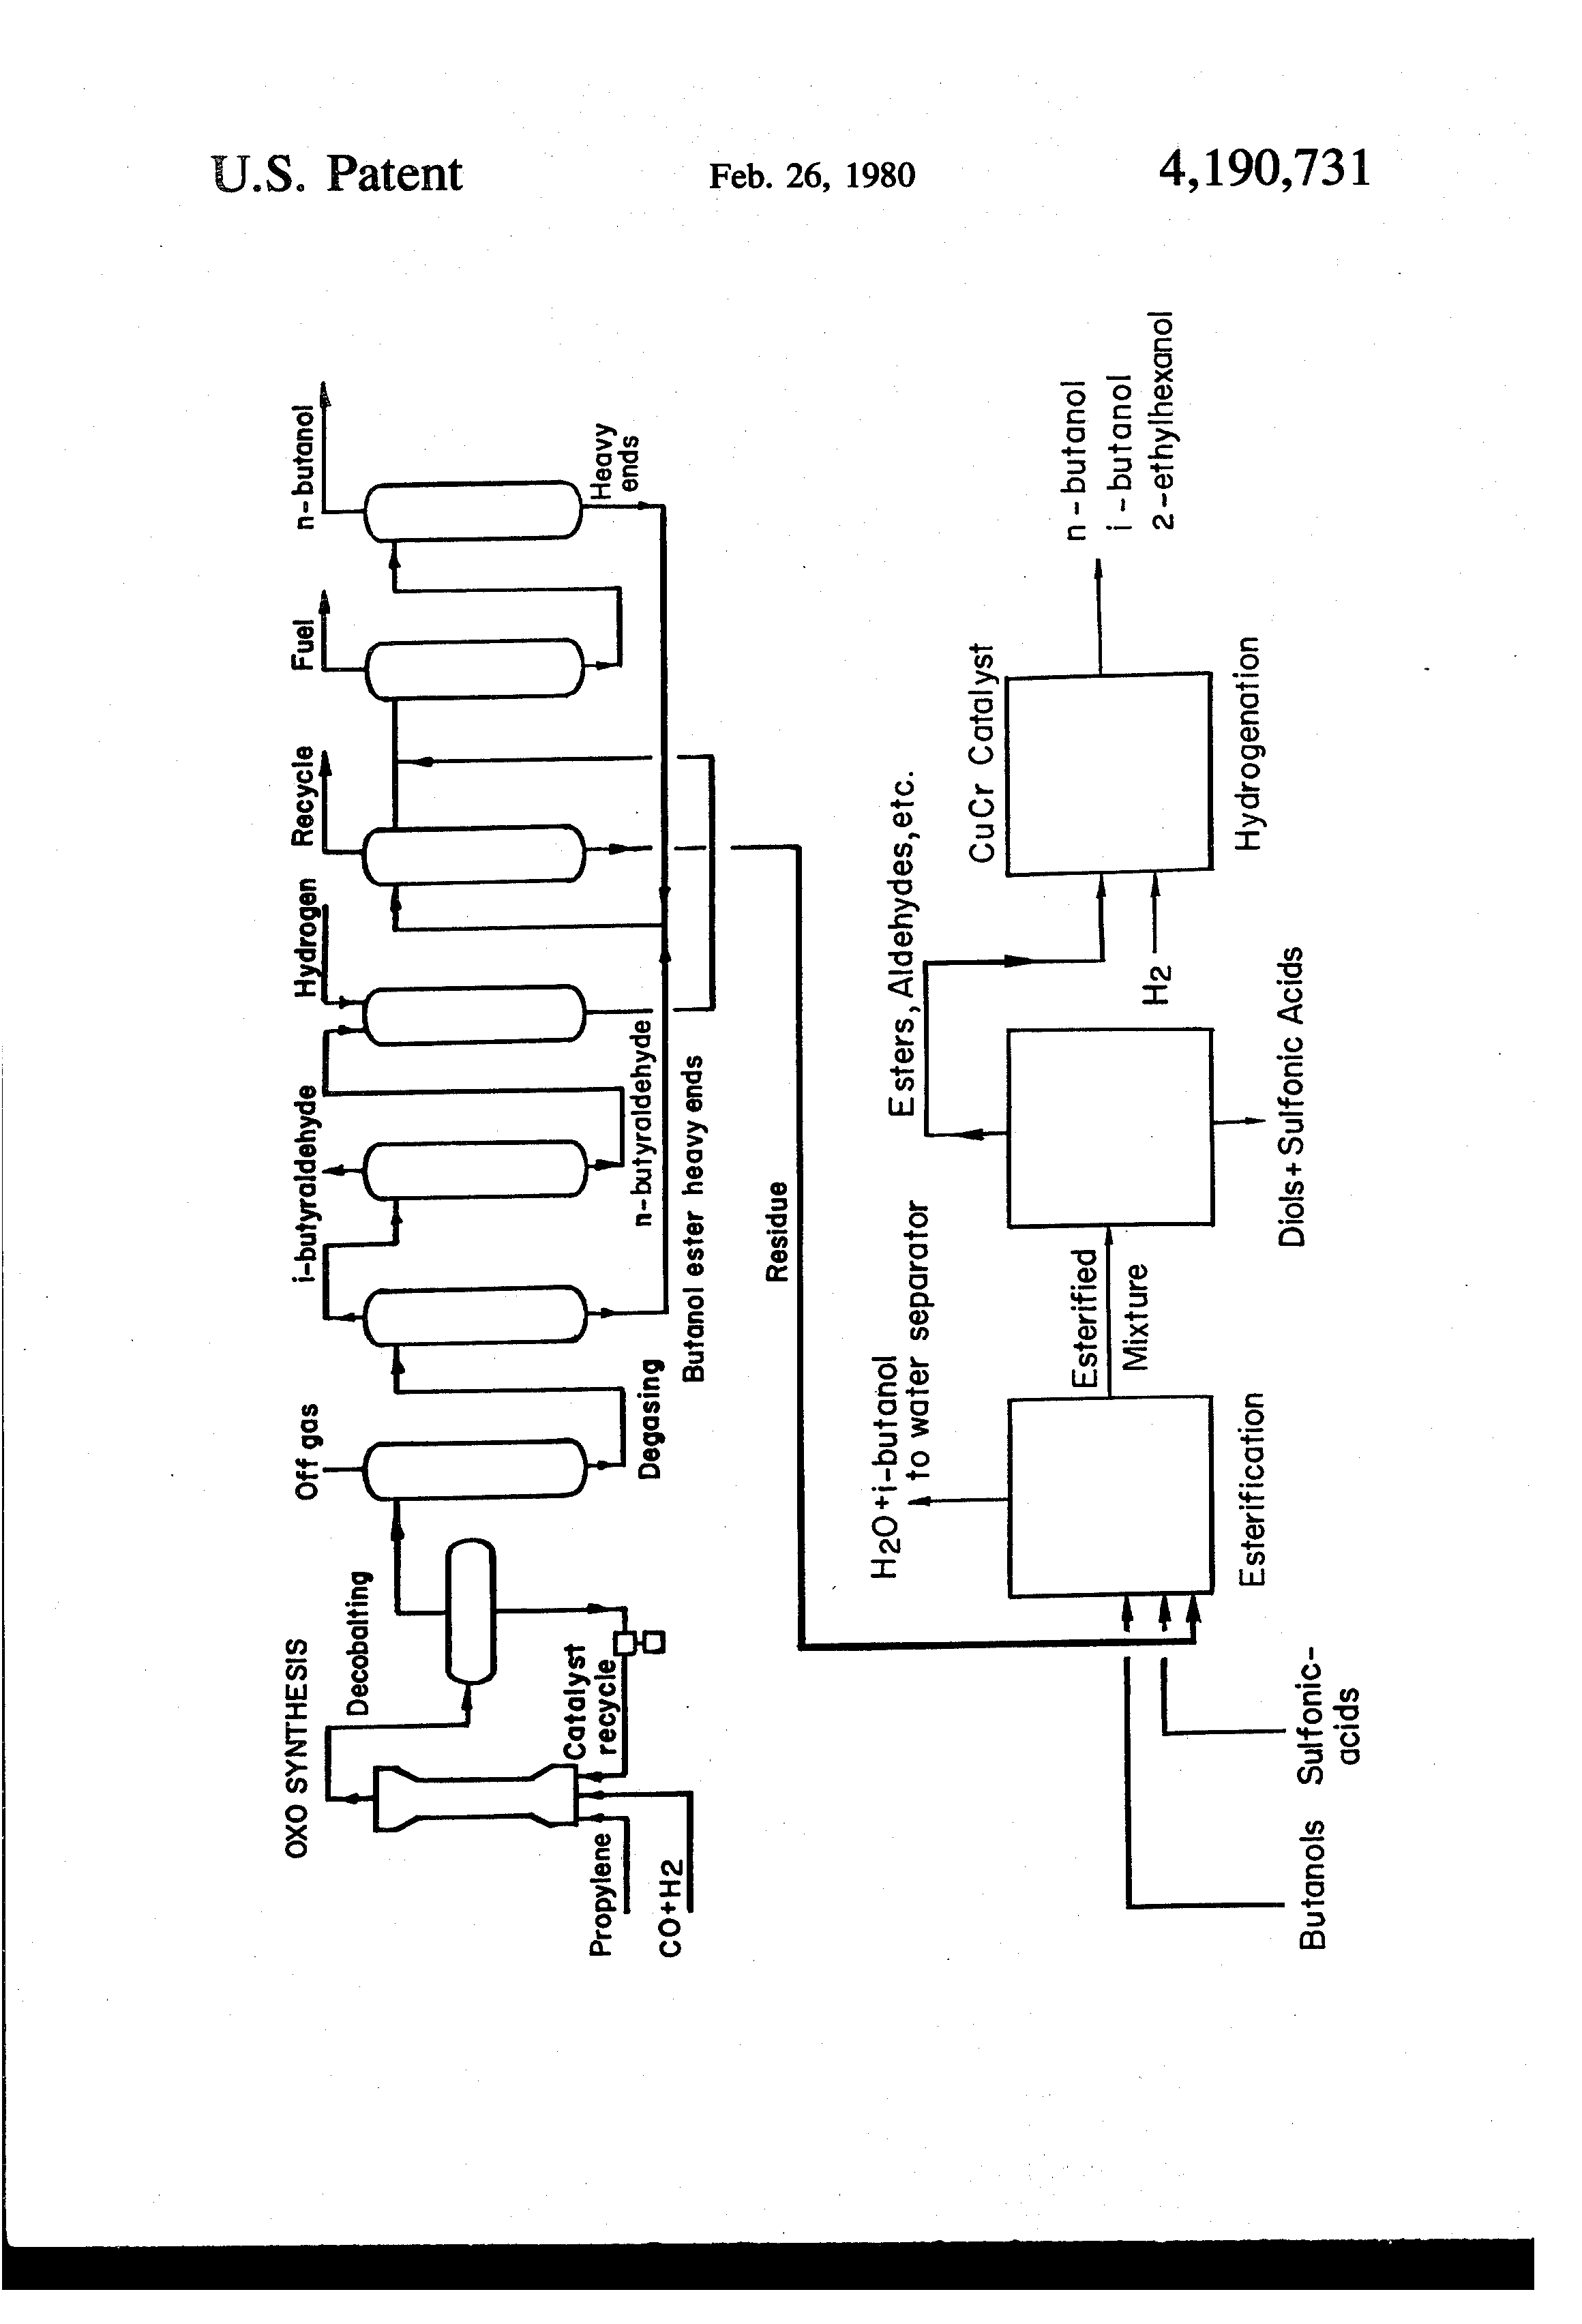 Proces Flow Diagram Iso